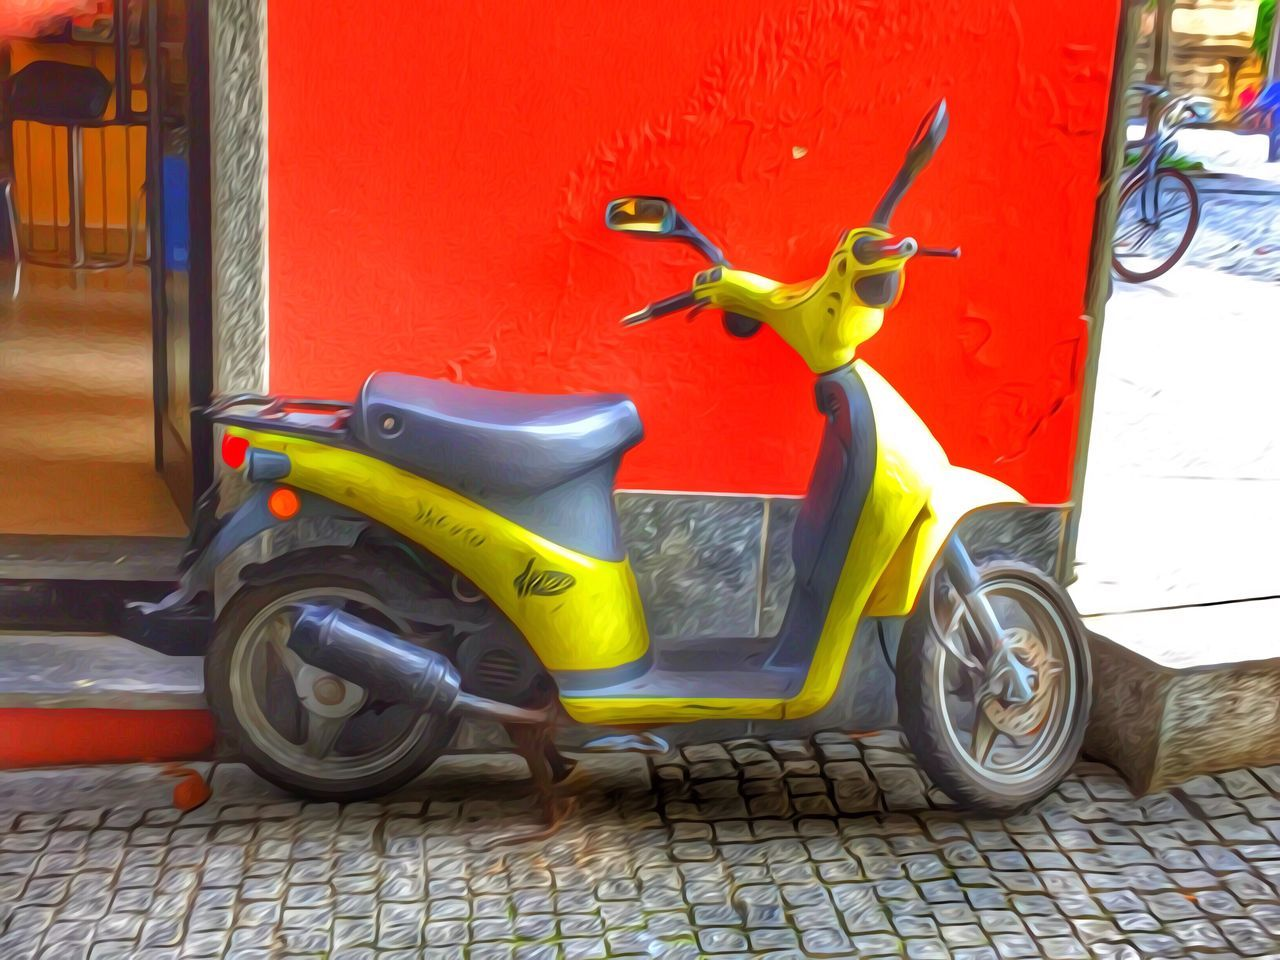 stationary, land vehicle, built structure, transportation, day, no people, outdoors, architecture, mode of transport, scooter, yellow, building exterior